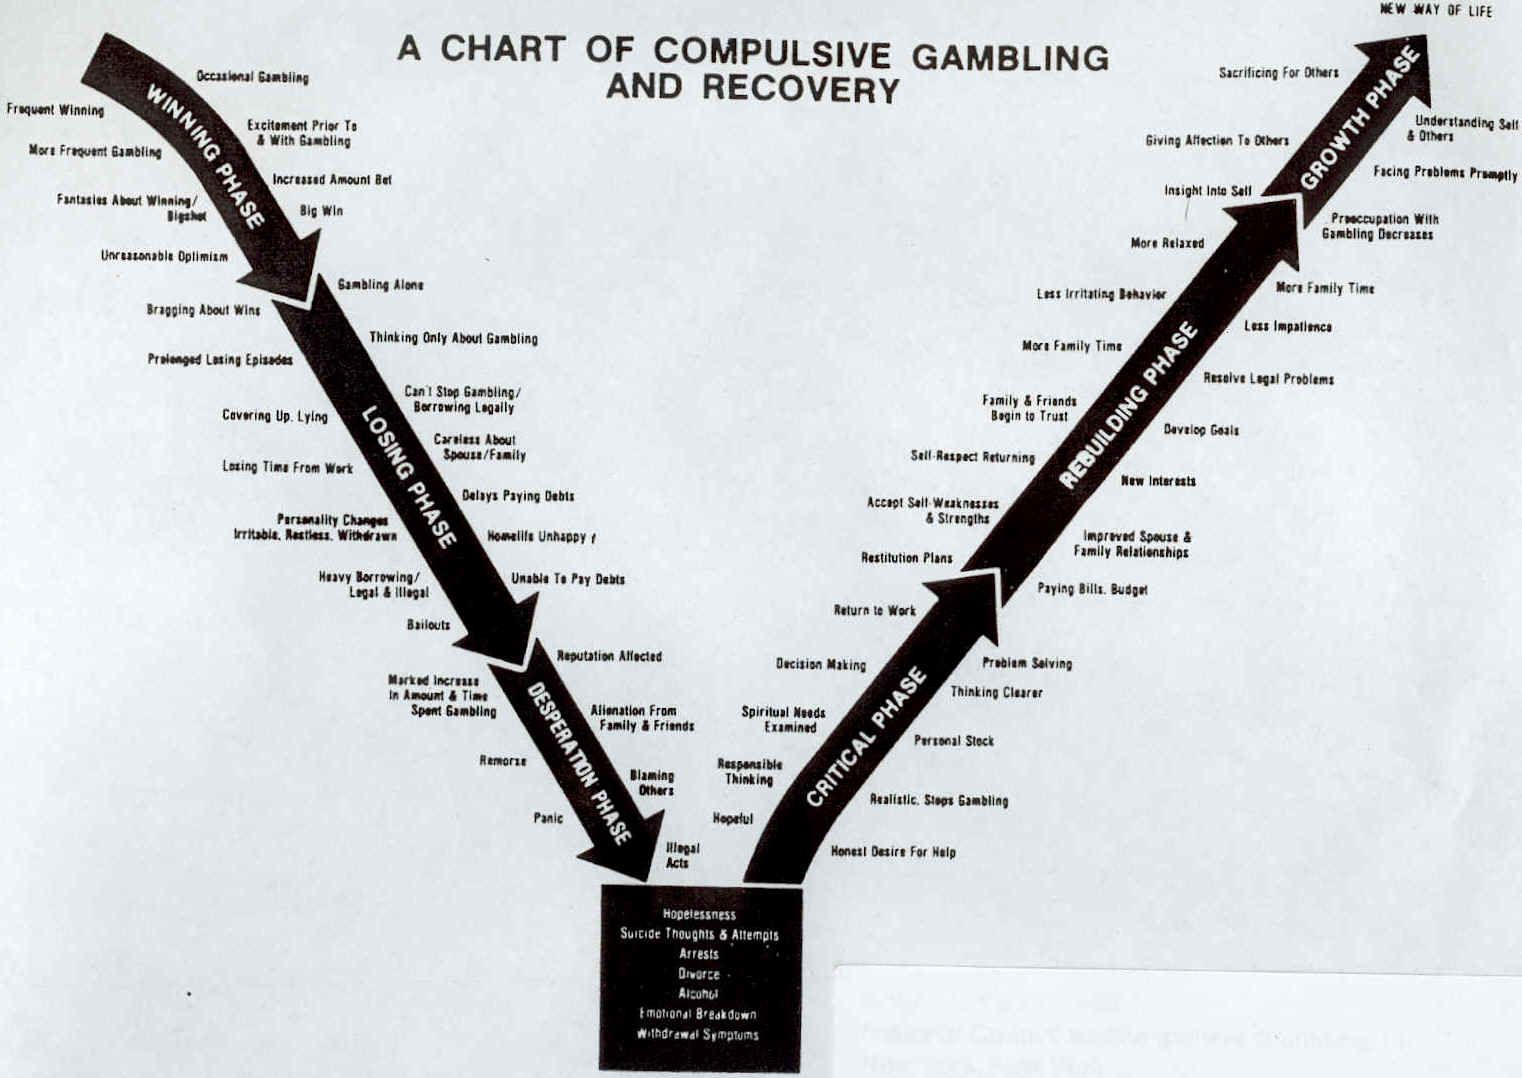 Gambling Addiction And Recoverya Graphic Of The Problem And The